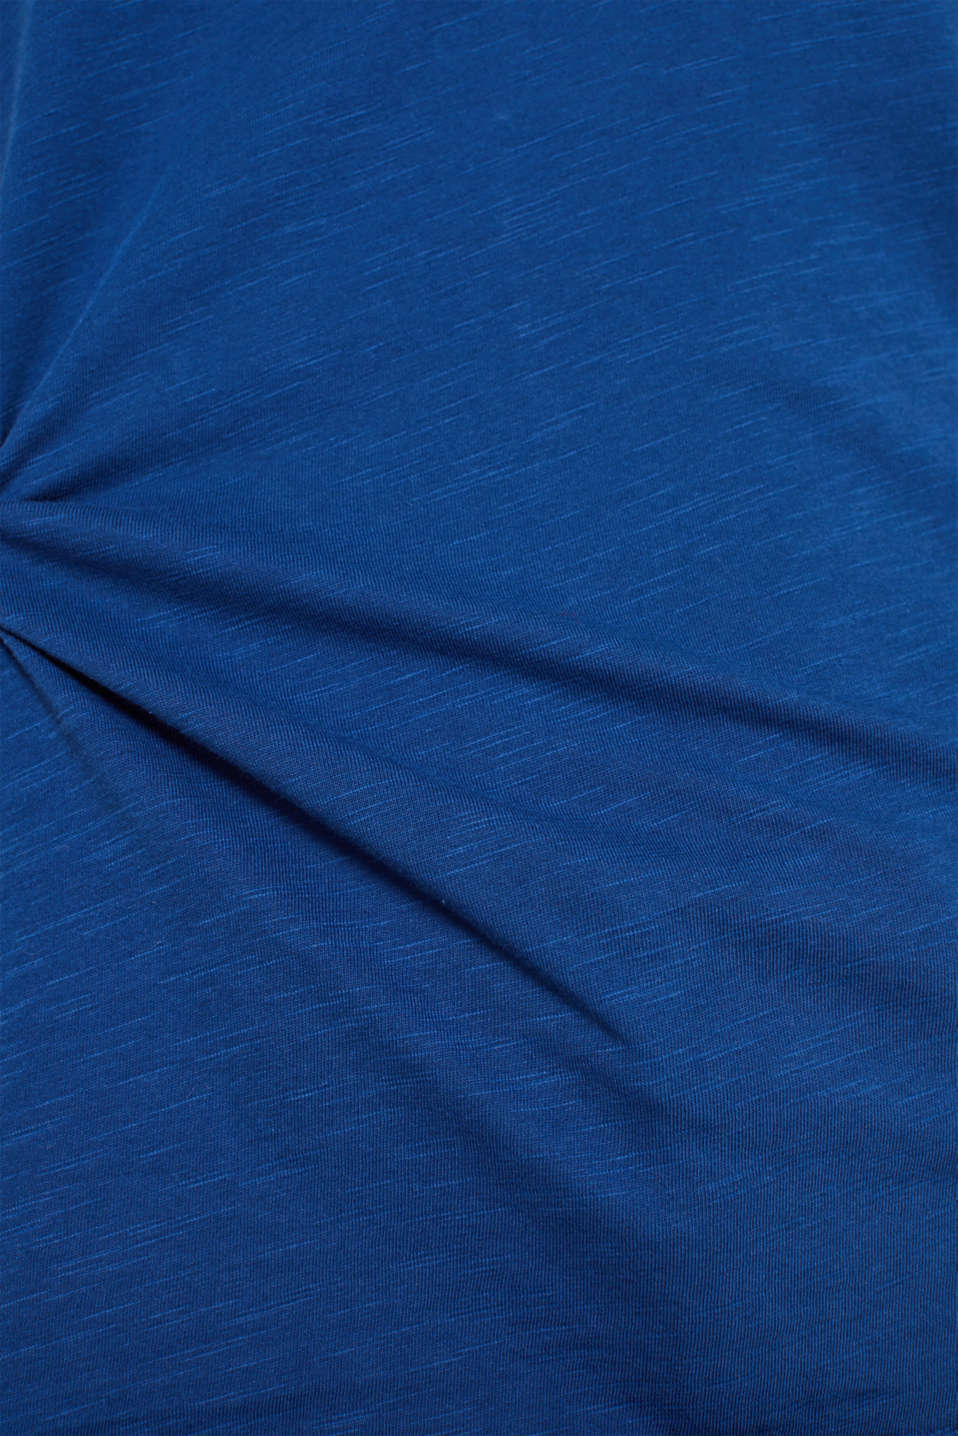 Long sleeve top with rolled edges, 100% cotton, DARK BLUE 4, detail image number 4